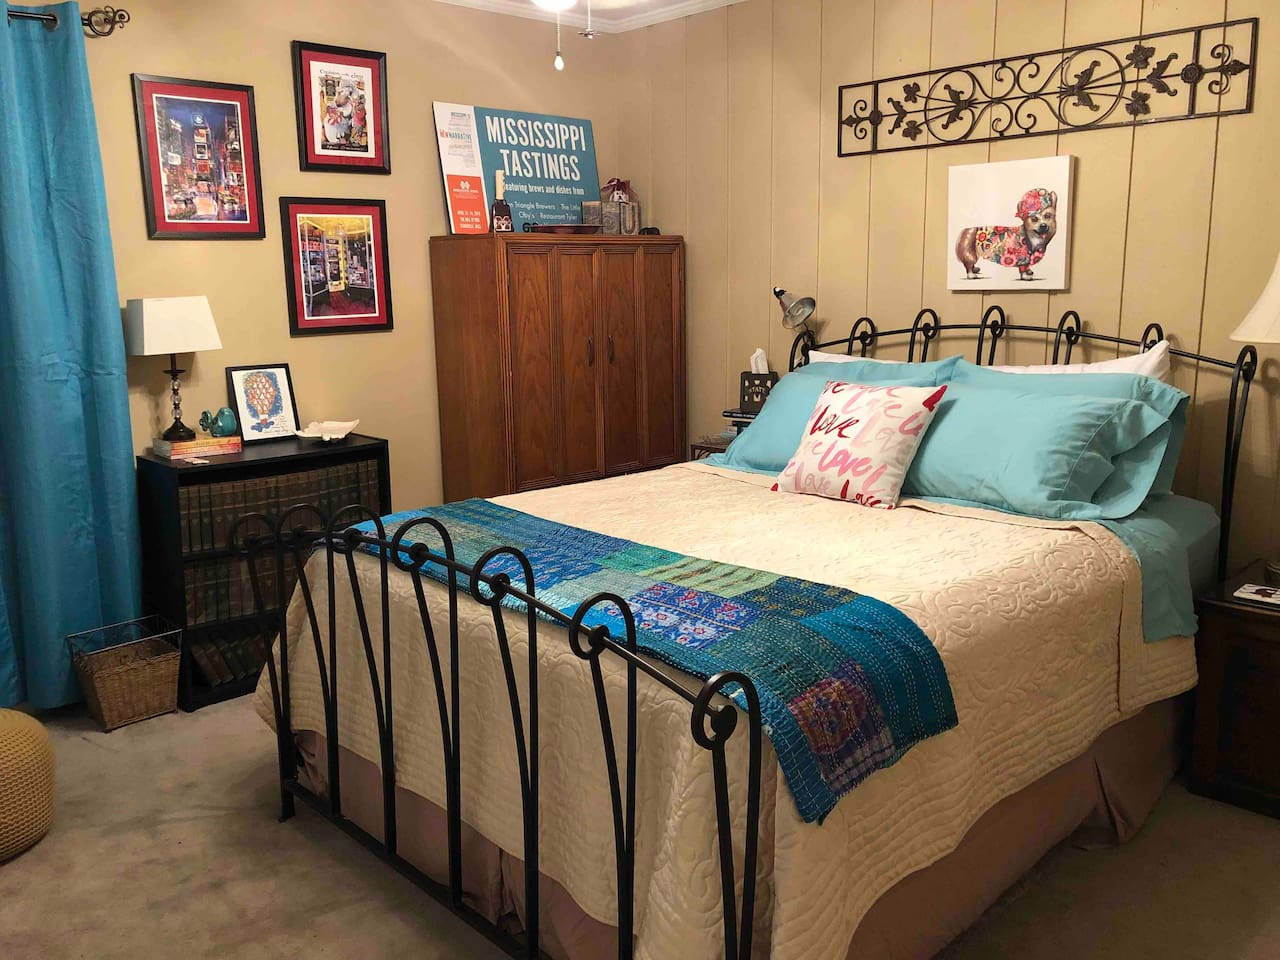 cushy queen bed with soft sheets and layered bedding